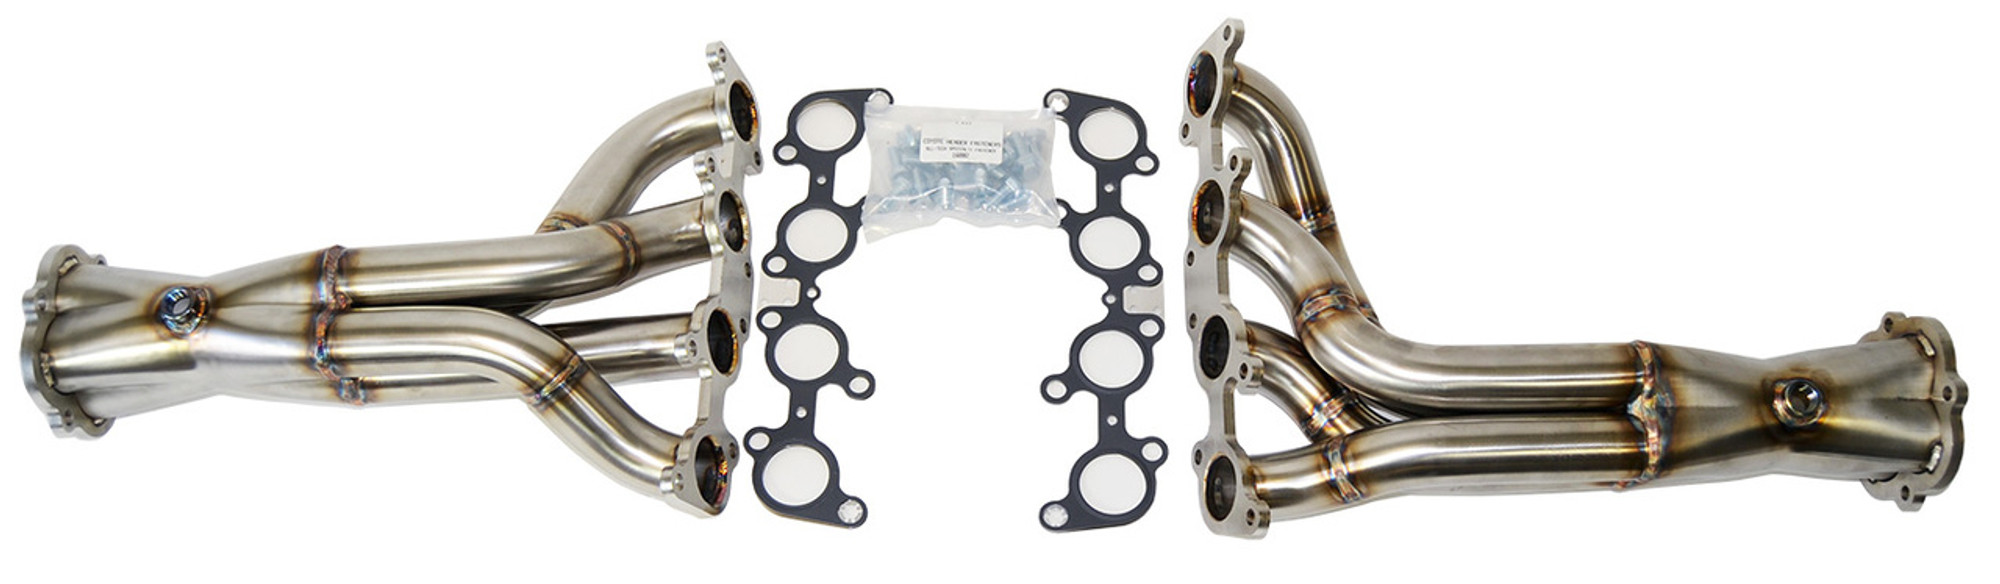 16267 stainless 50 coyote 4 into 4 headers factory five parts 16267 stainless 50 coyote 4 into 4 headers malvernweather Images